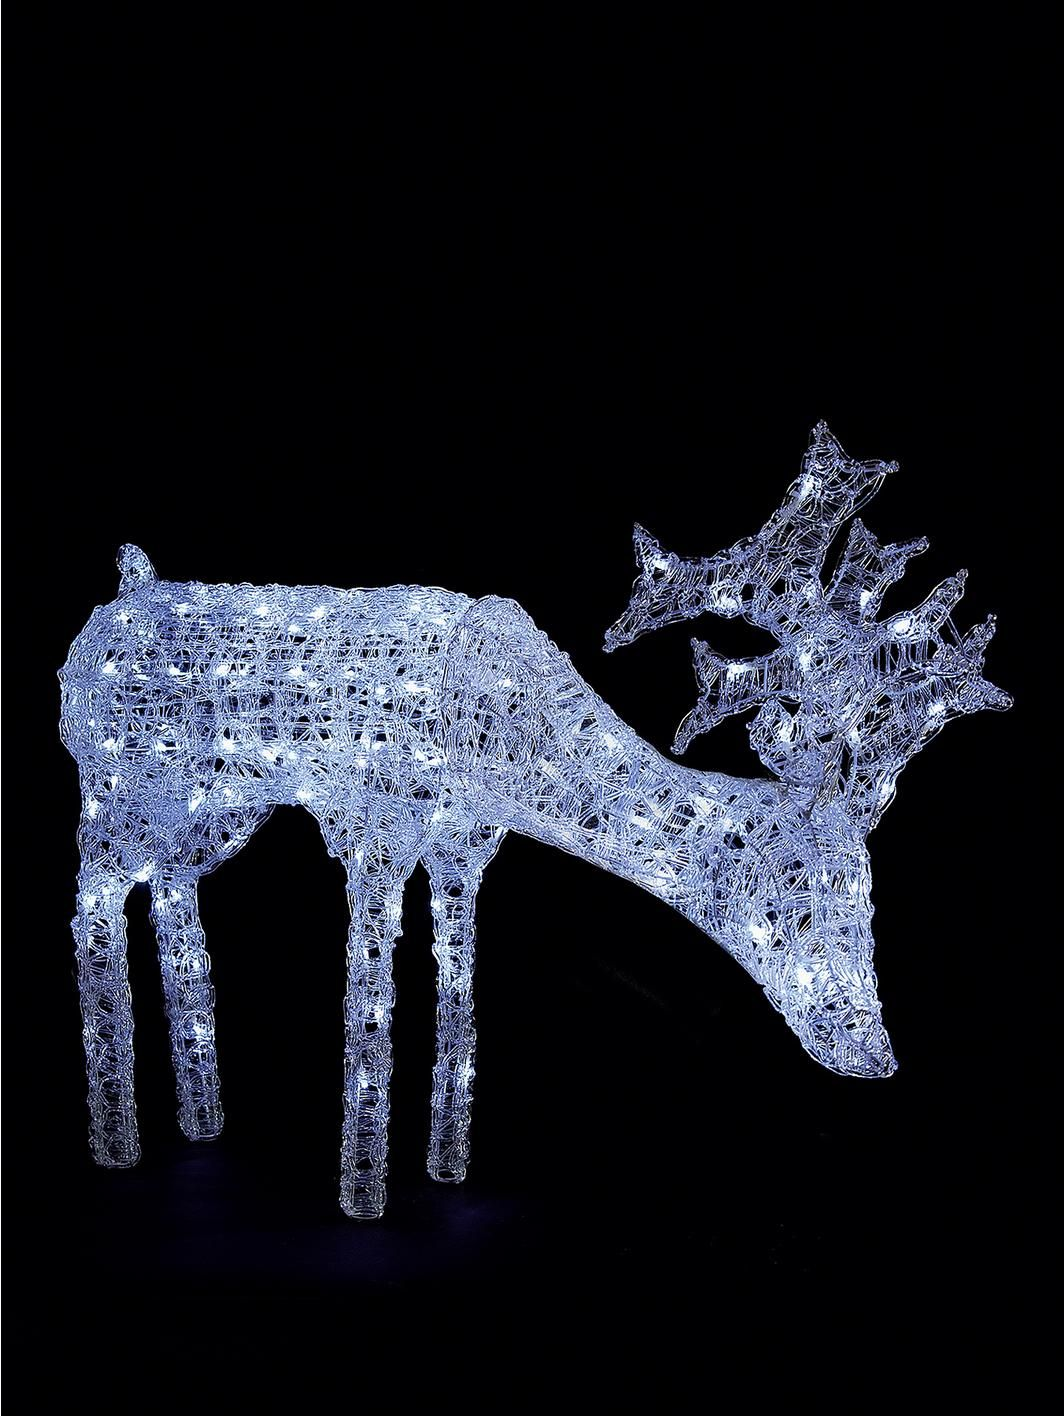 Grazing White Light-up Reindeer Outdoor Christmas Decoration - VeryChristmasCrib Grazing White Light-up Reindeer Outdoor